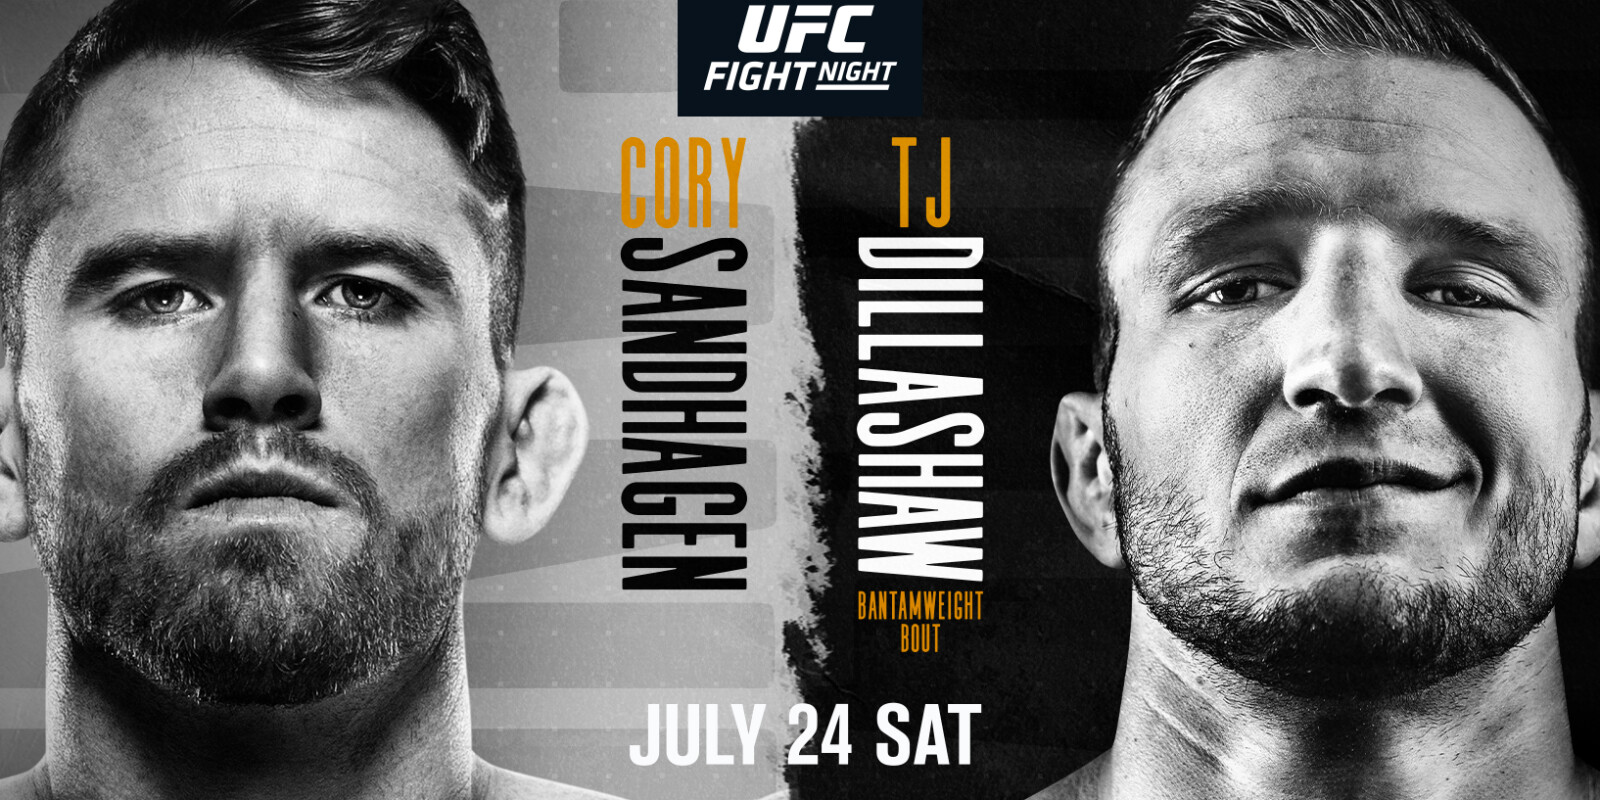 Assets sent by UFC , using them for event page on website.